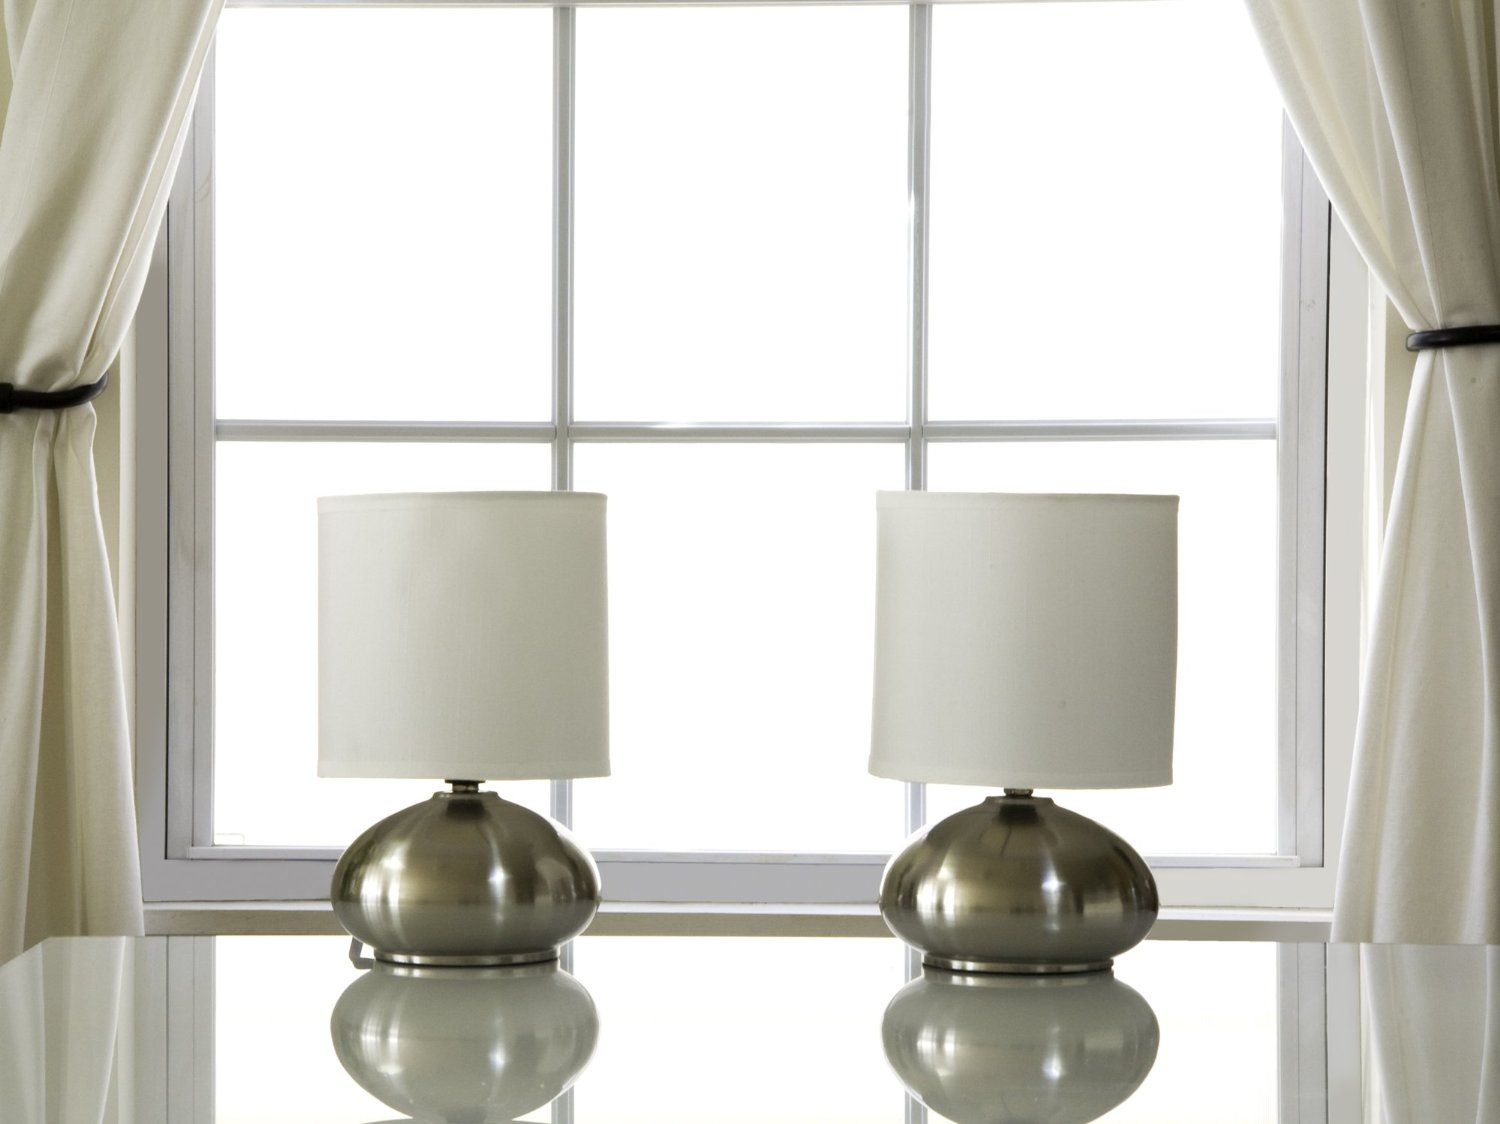 Light Accents Touch Table Lamp Set   Metal Lamps With Fabric Shades And  3 Stage Touch Dimmer Switch (Brushed Nickel)